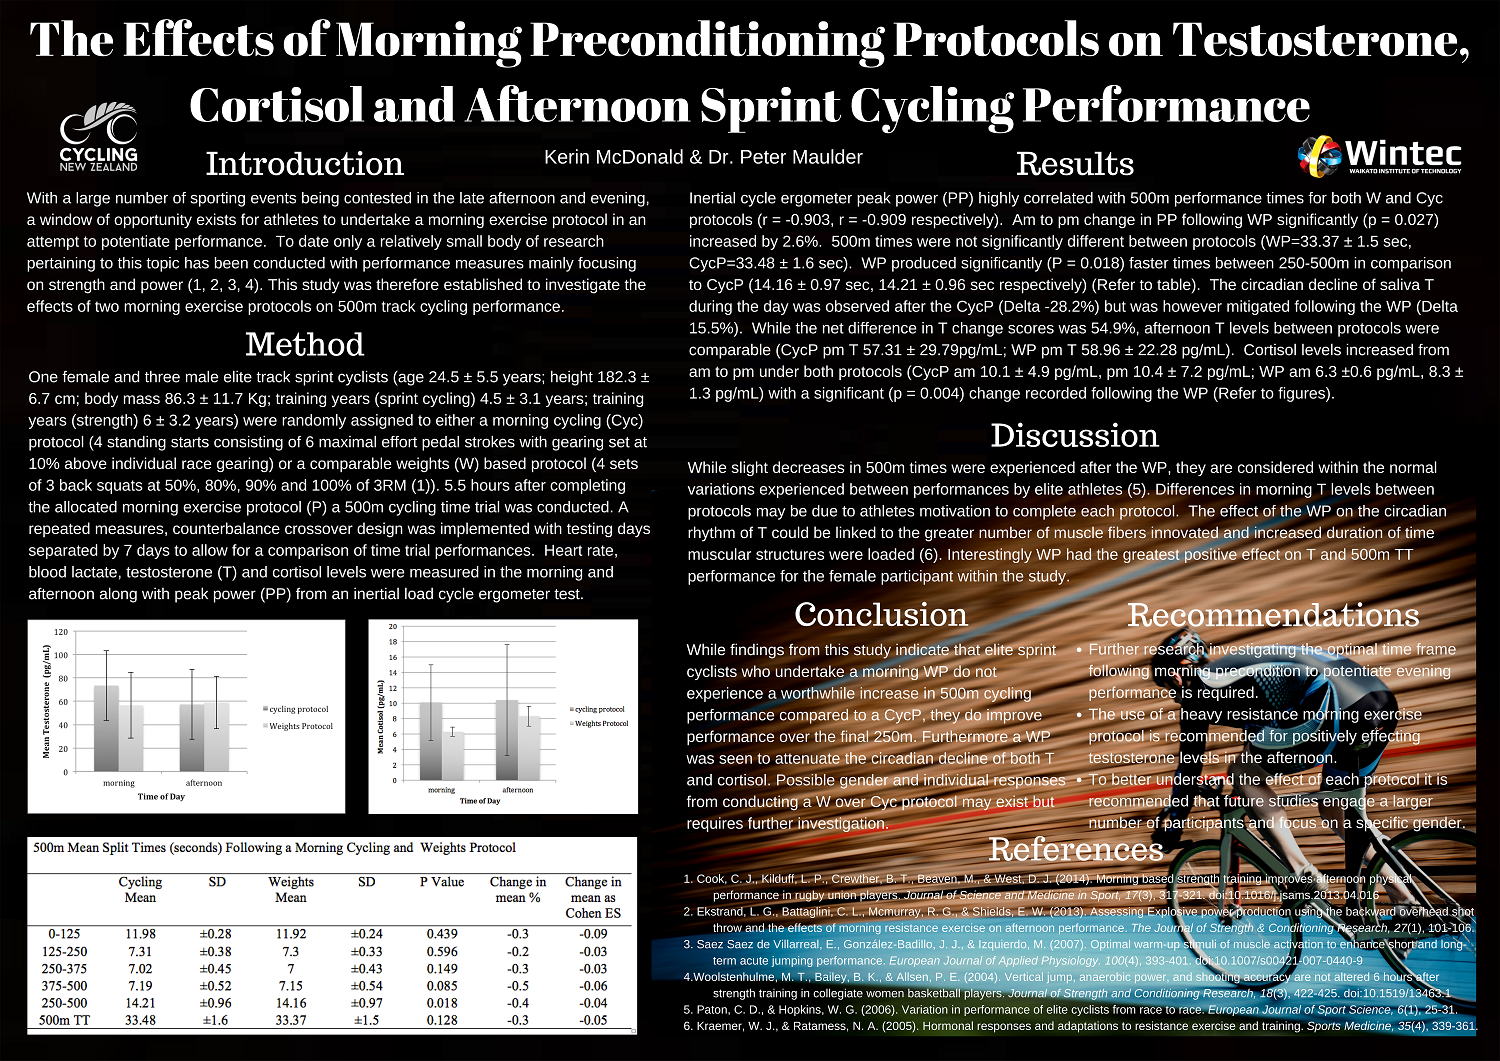 The Effects of Morning Preconditioning Protocols on Testosterone, Cortisol and Afternoon Sprint Cycling Performance